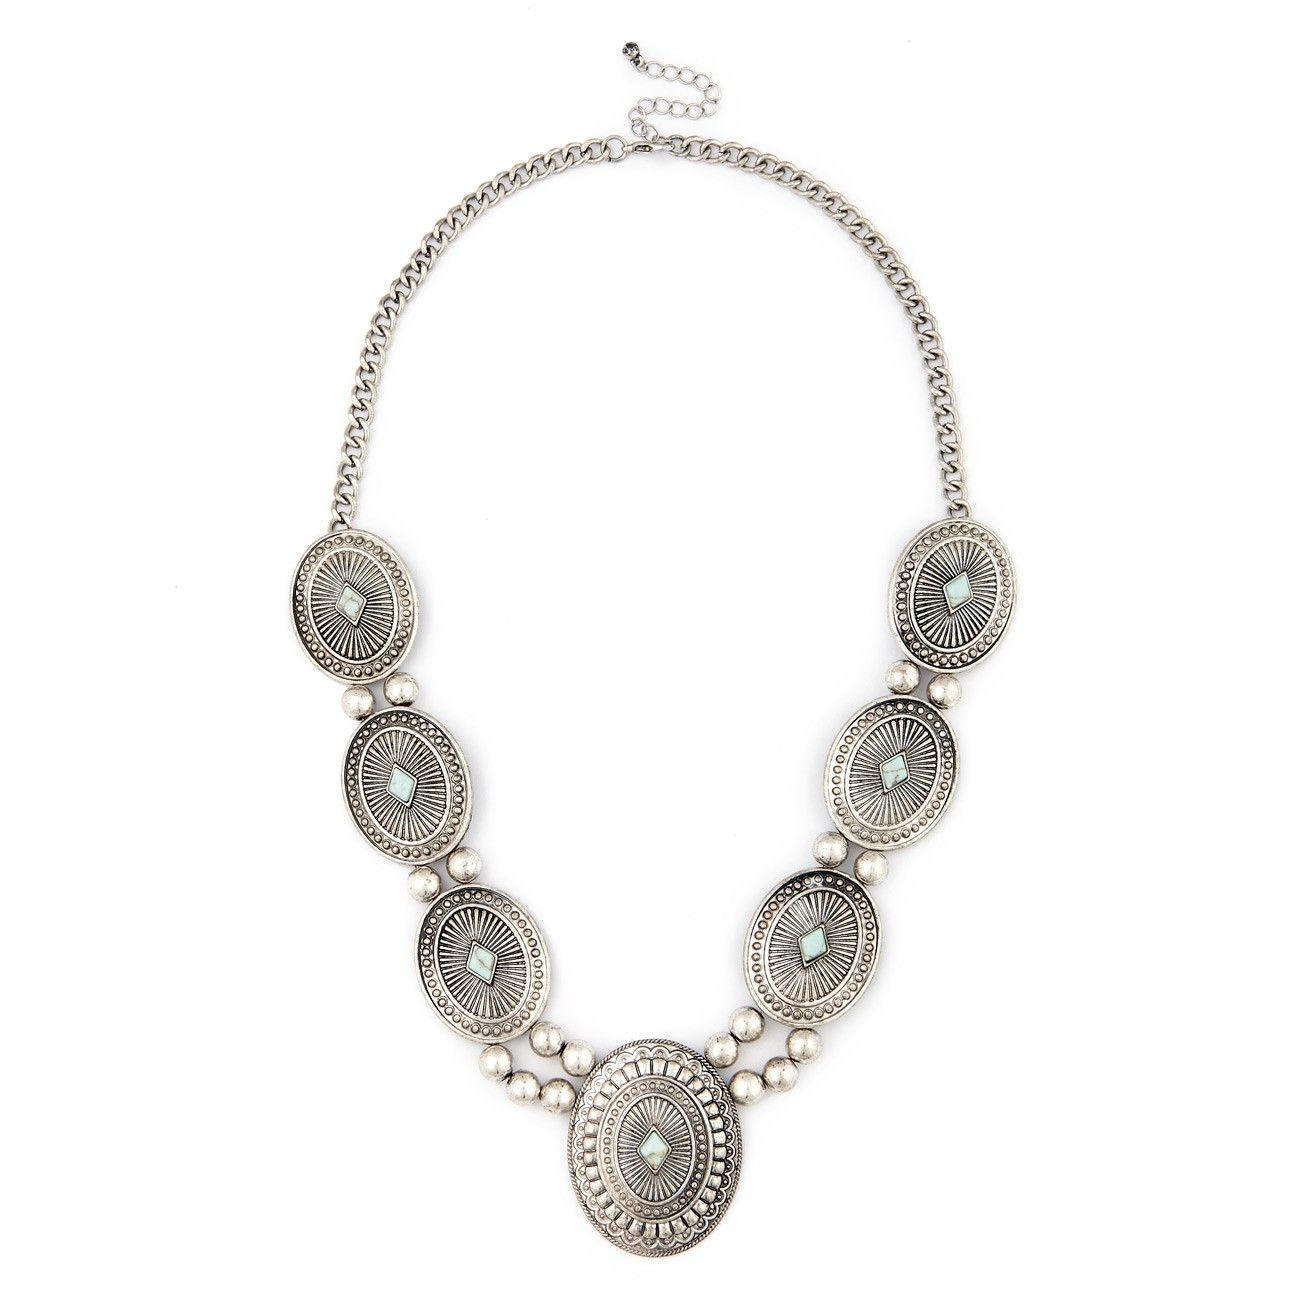 Sole Society Womens Over Statement Bib Necklace In Color: Black One Size From Sole Society tL3i6h